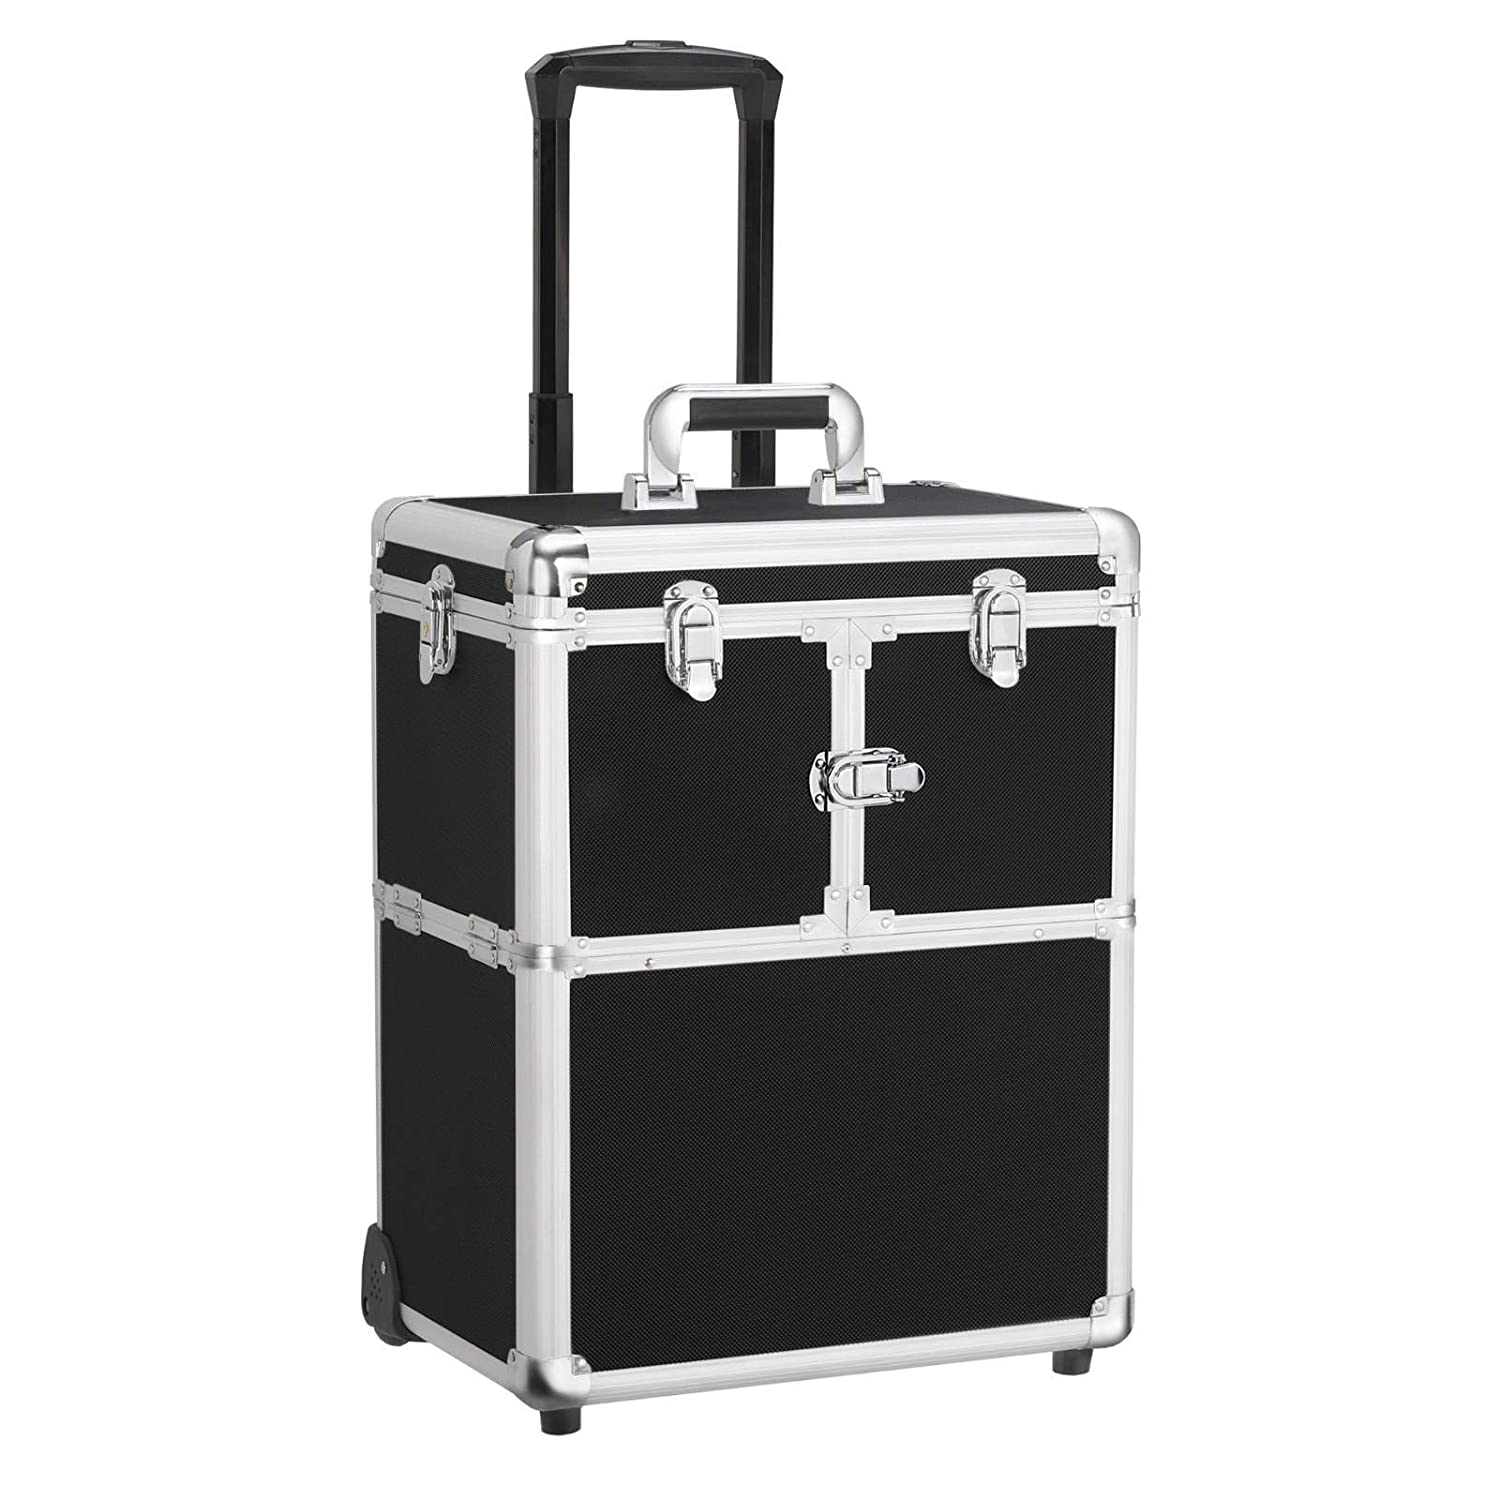 Yaheetech Professional trolley makeup case